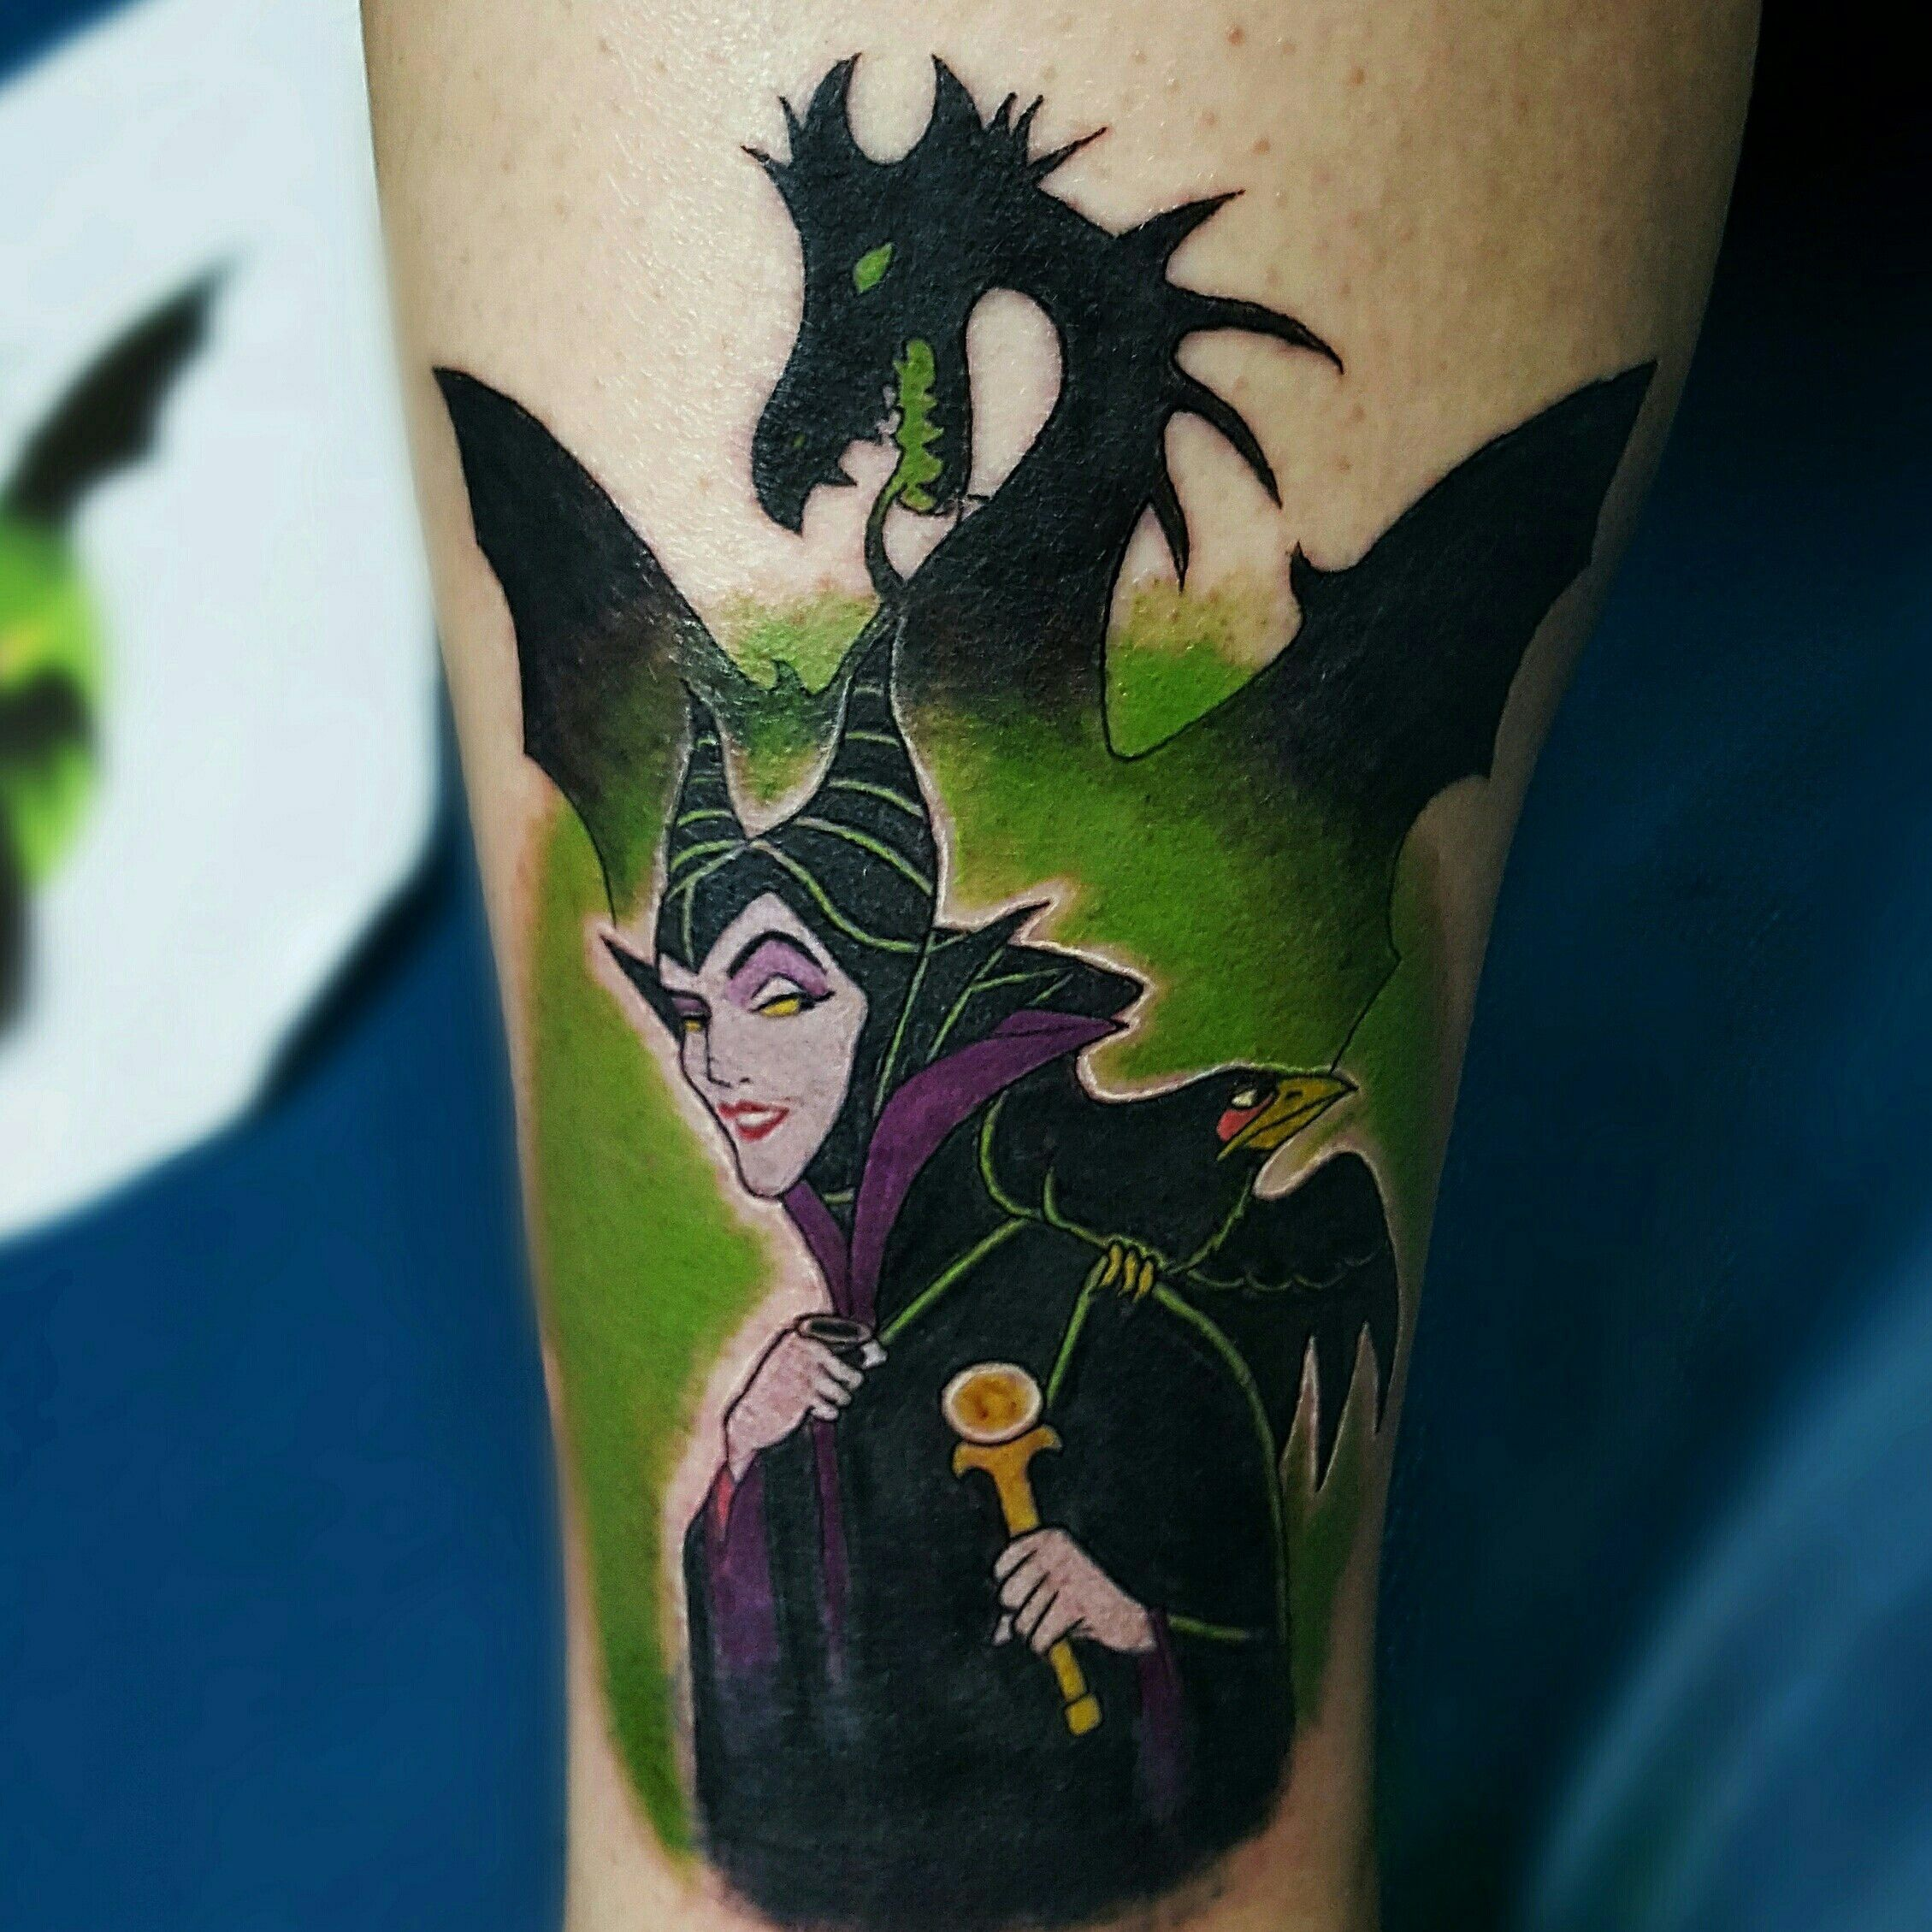 maleficent tattoo done by mika at indigenous ink in lake elsinore ca awesome tattoos. Black Bedroom Furniture Sets. Home Design Ideas